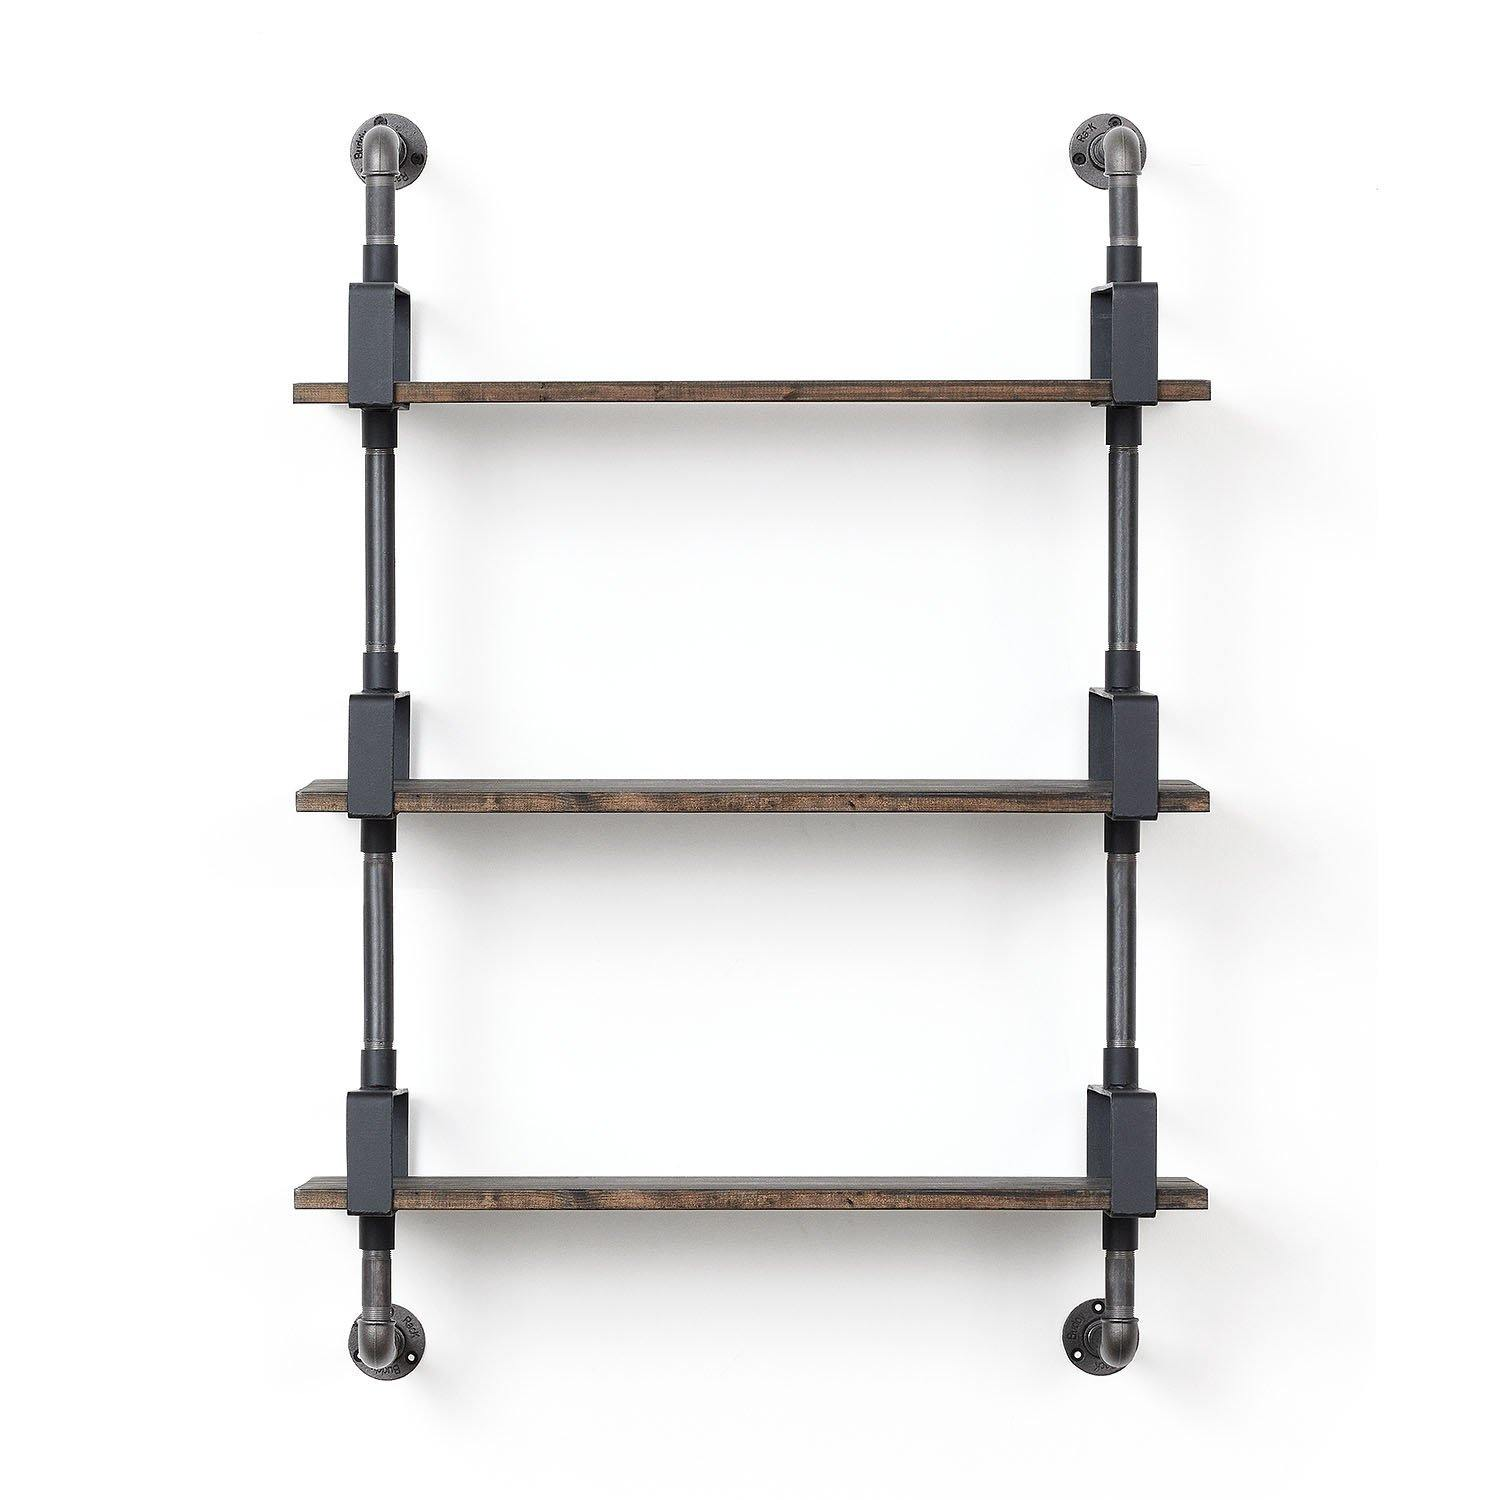 RackBuddy Shelfie System